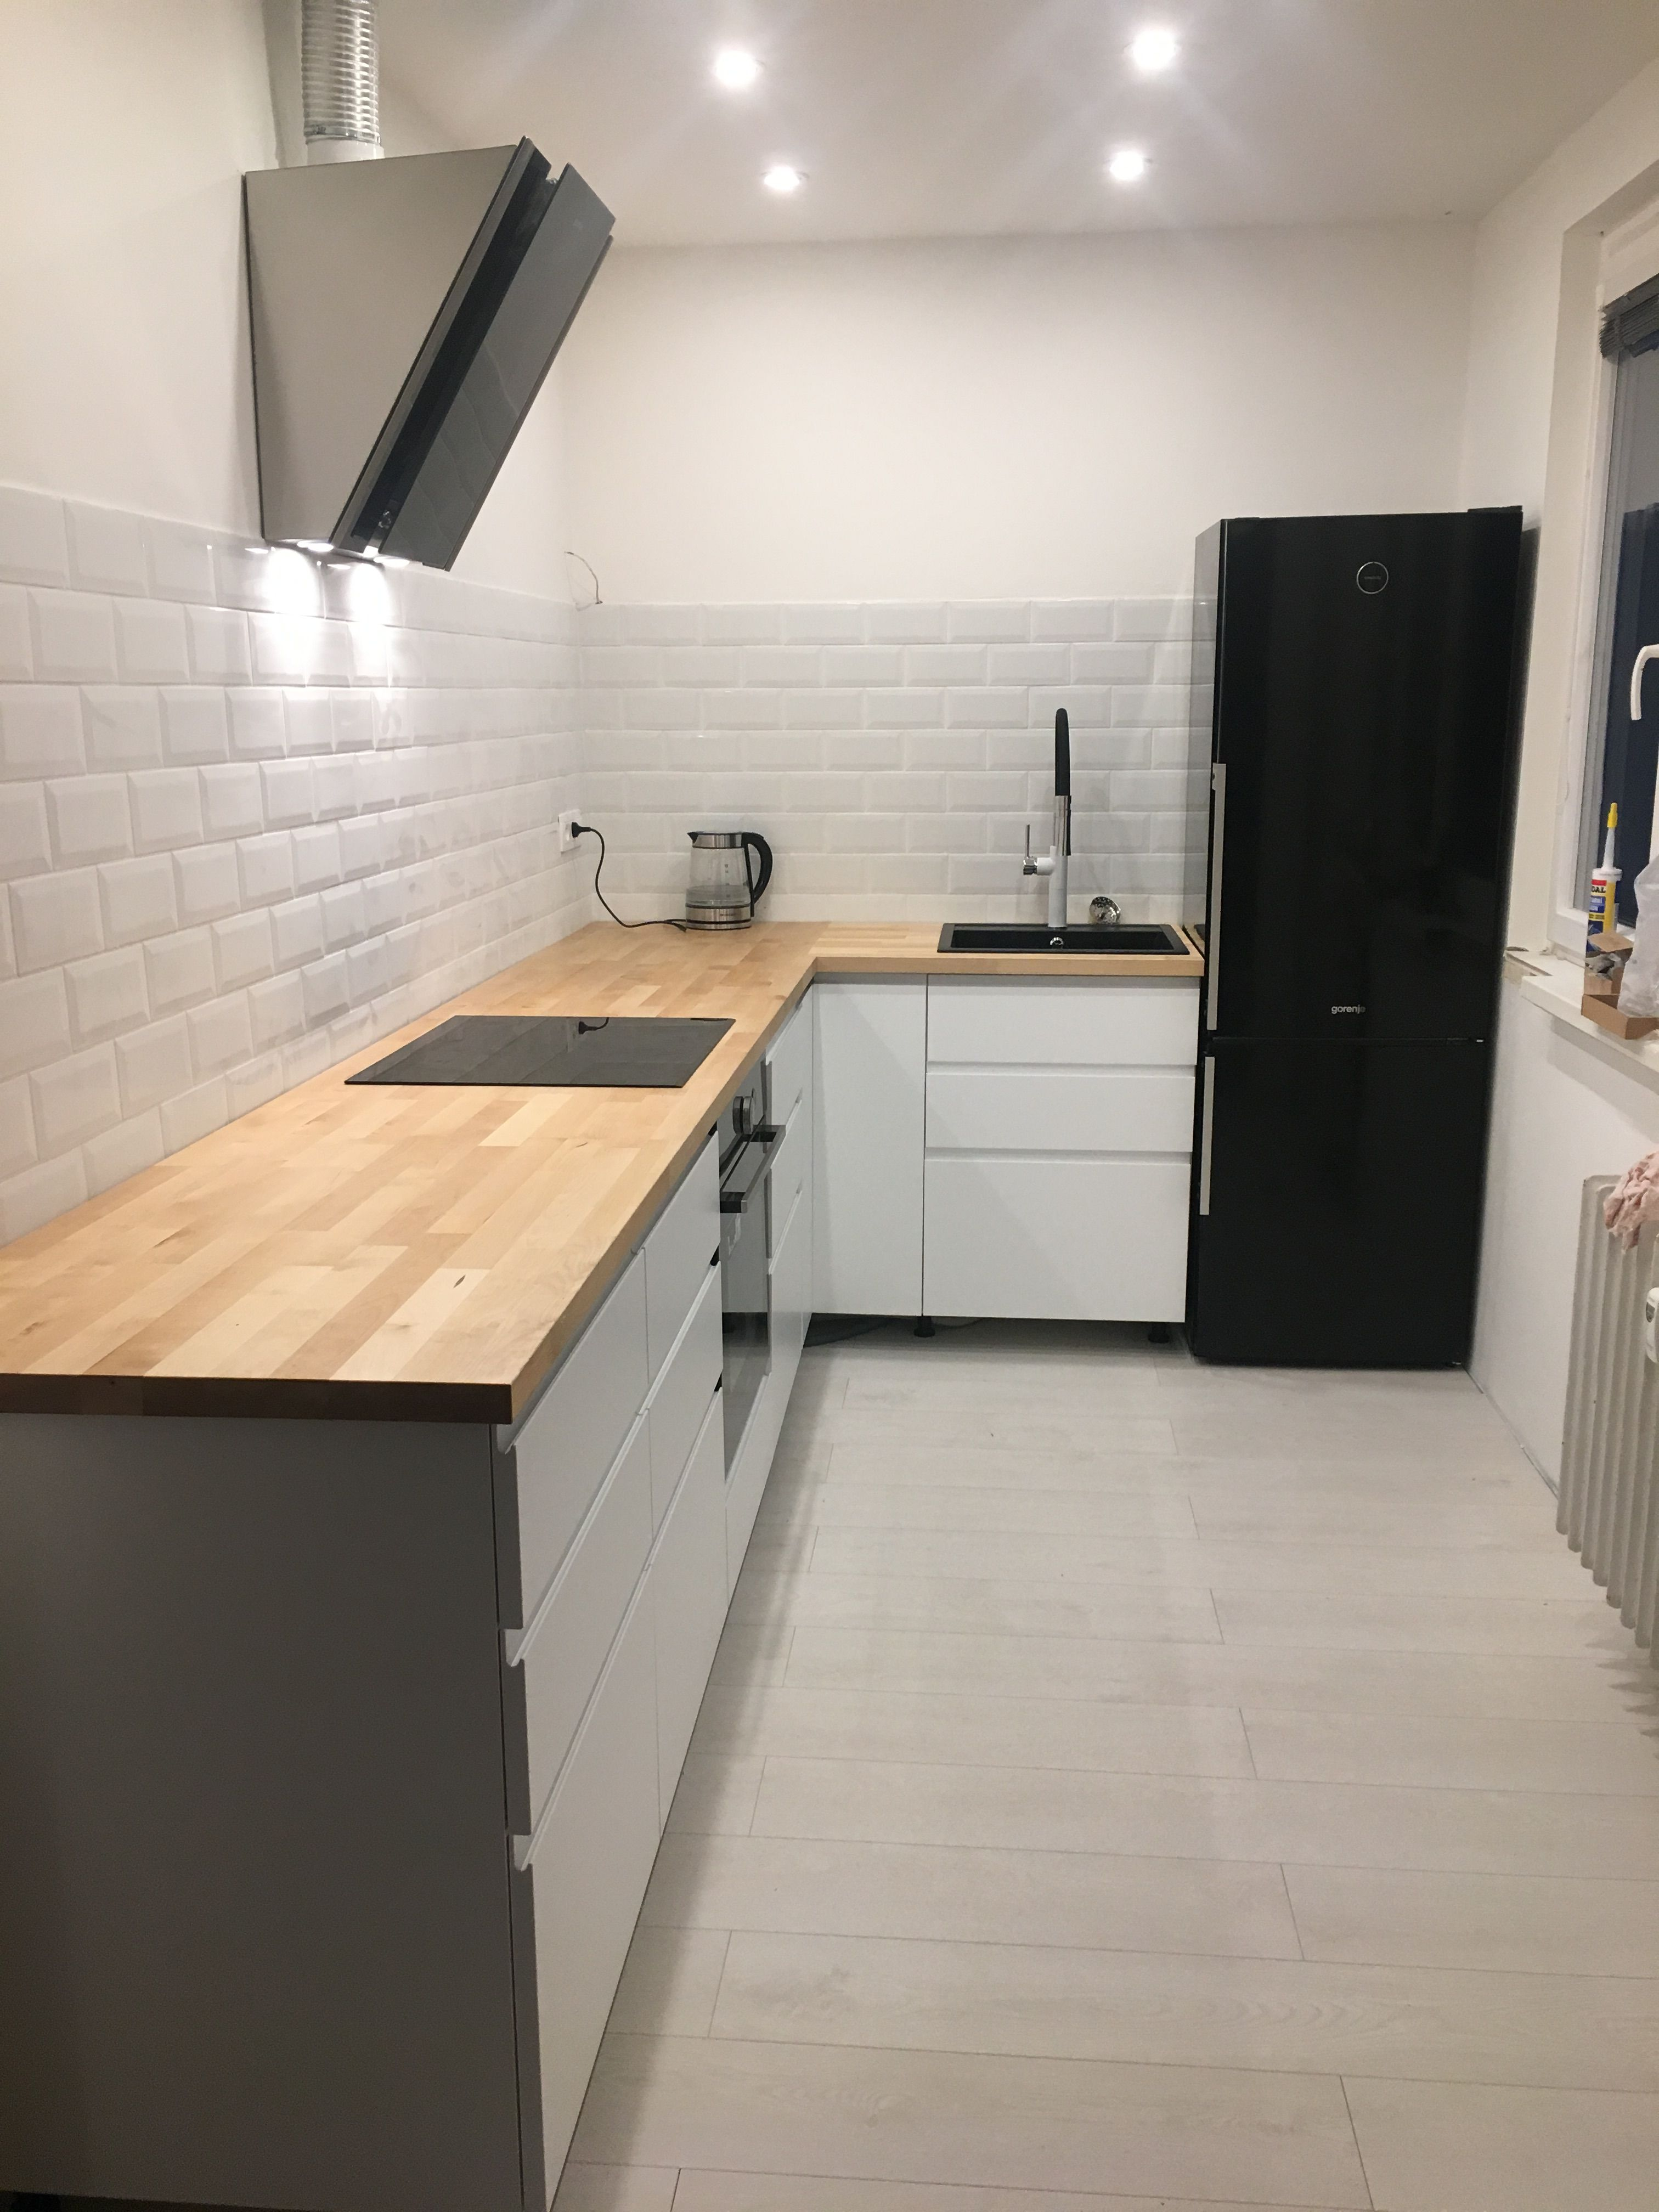 Ikea Voxtorp Simply Kitchen From Ikea Voxtorp Black And White Is The